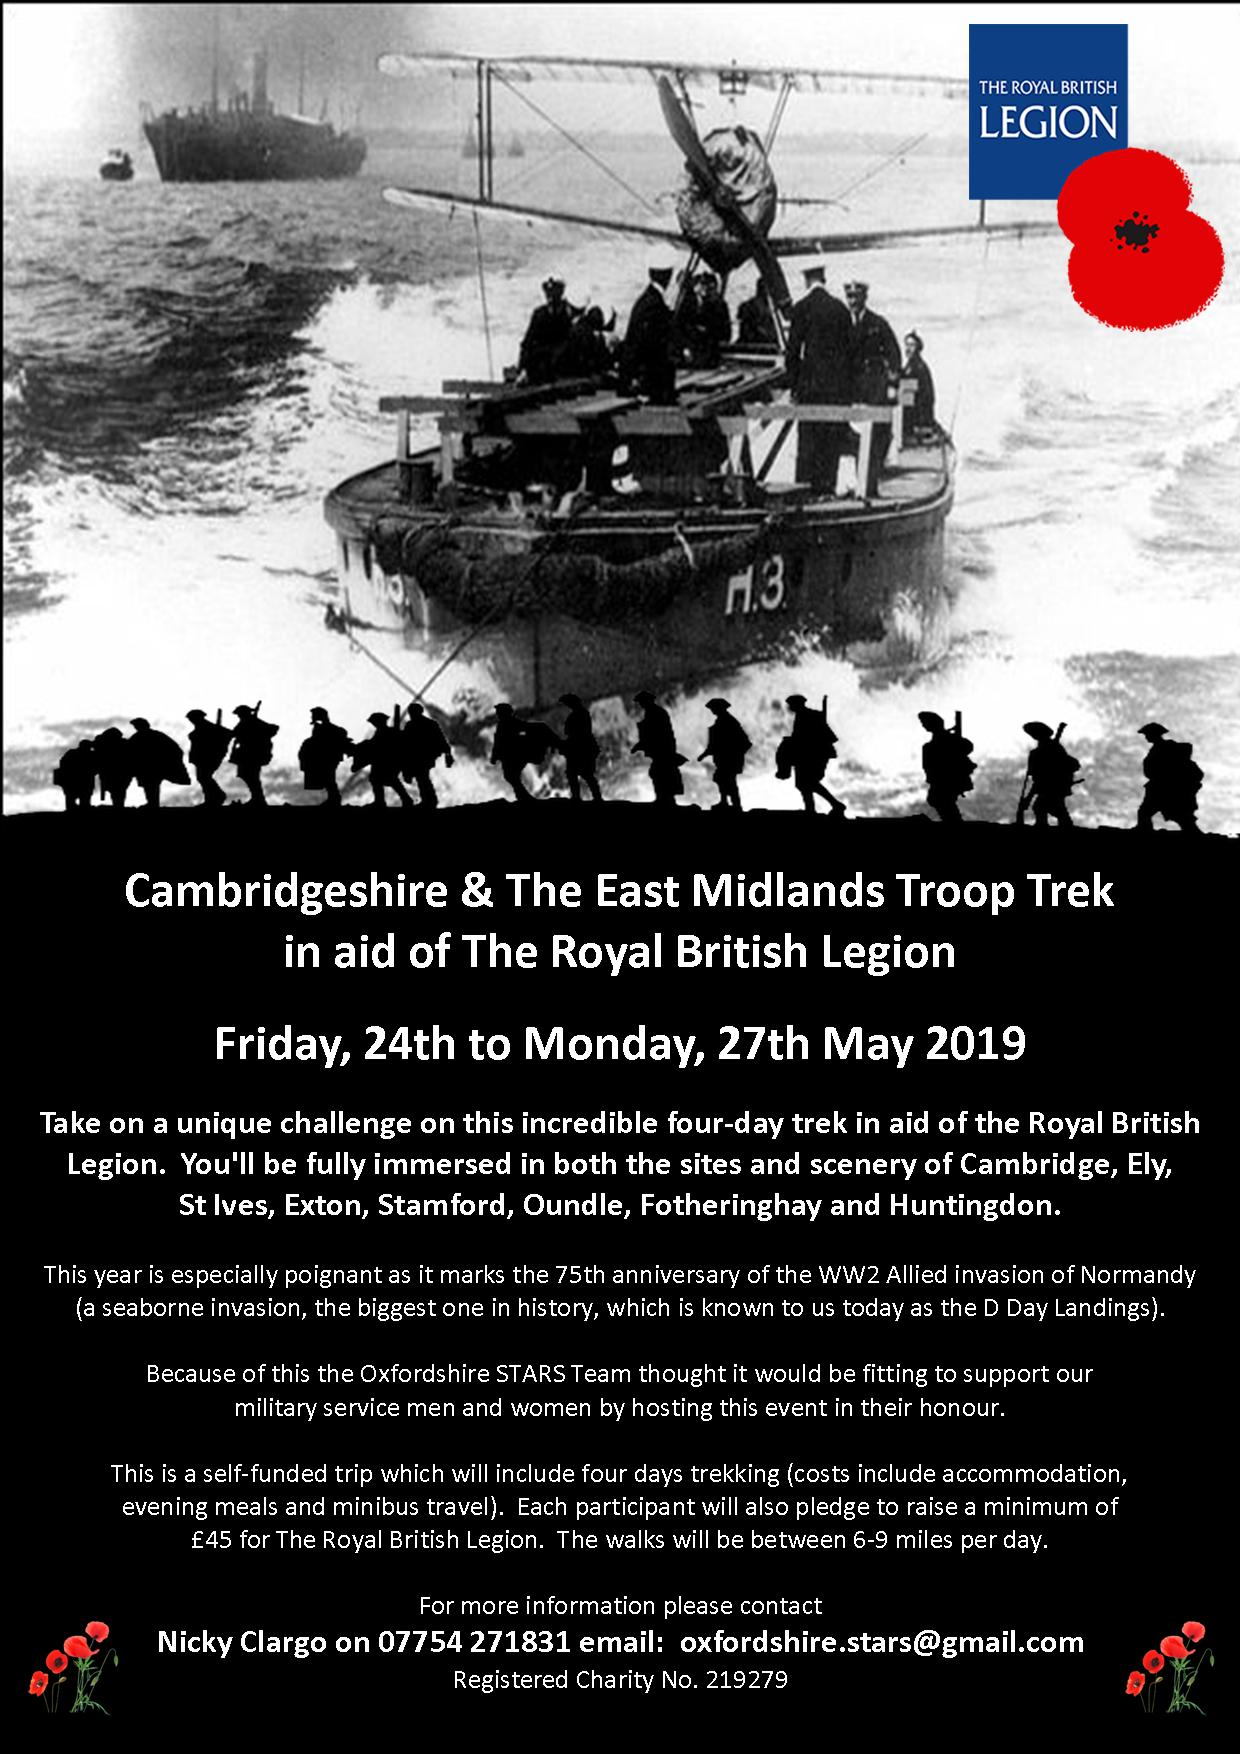 Troop Trek in Cambridgeshire and the East Midlands